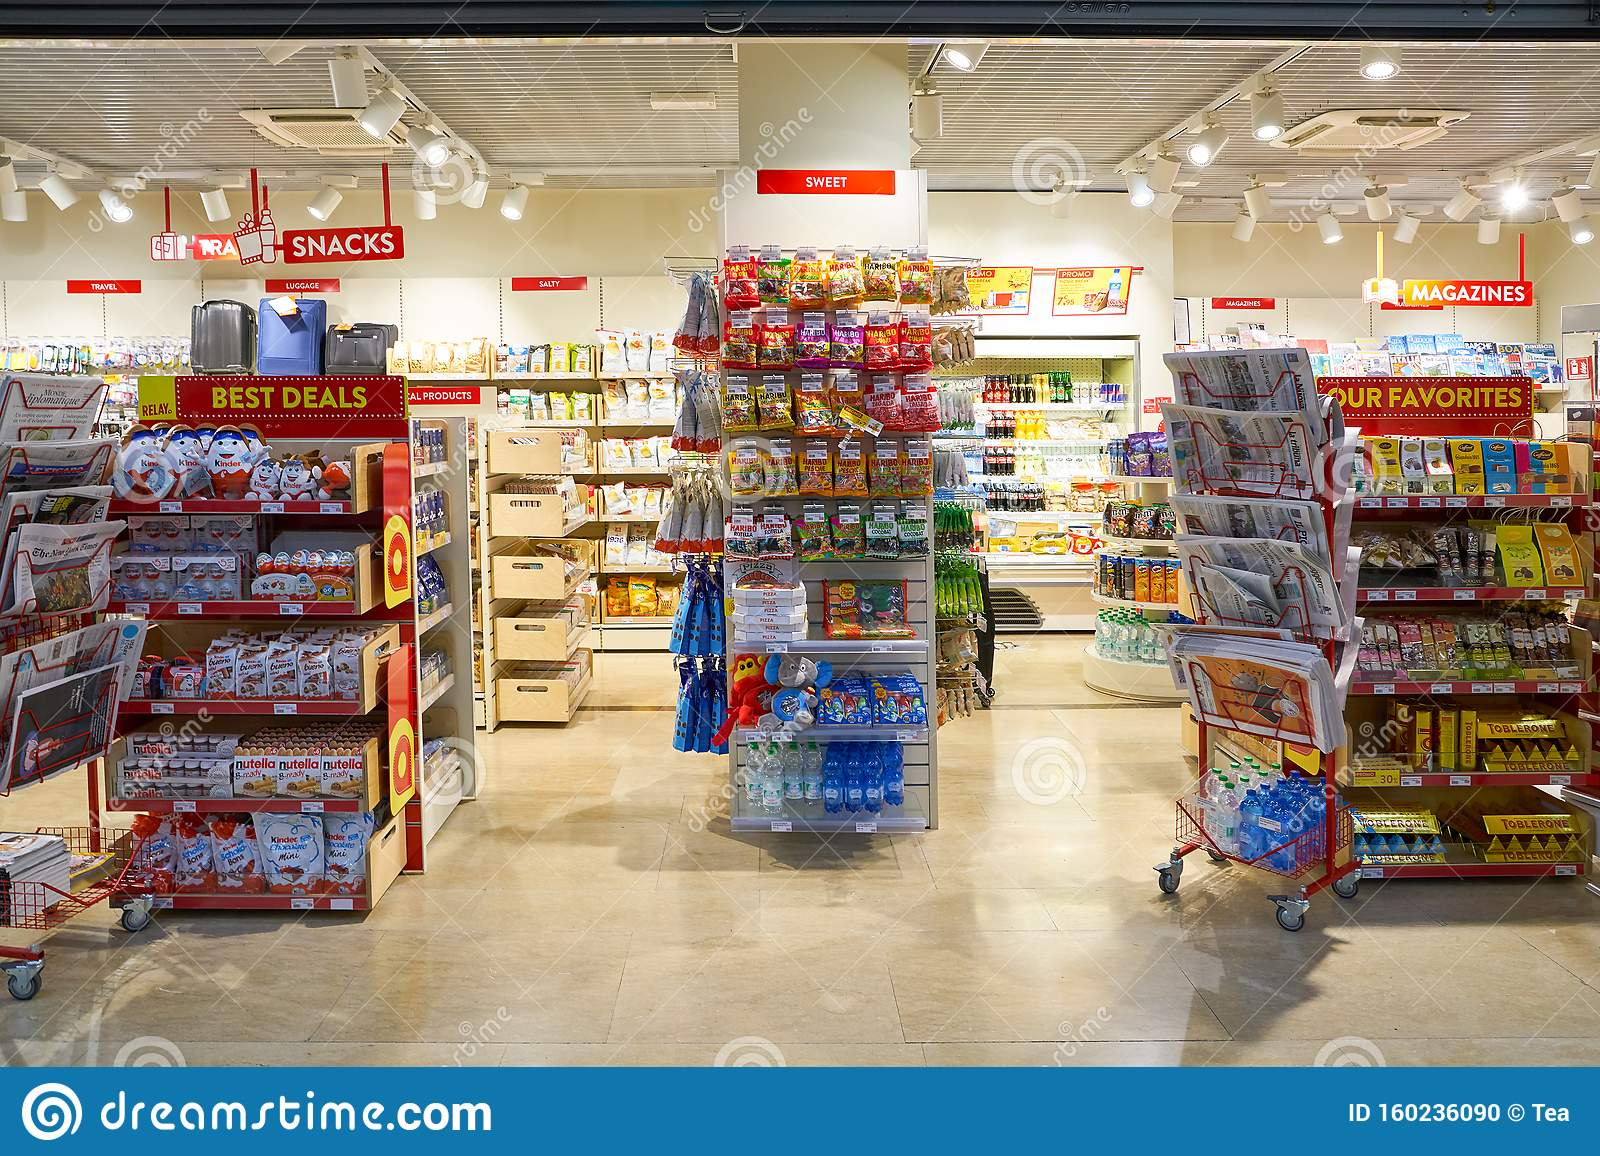 Venice Marco Polo Airport editorial image. Image of merchandise - 160236090